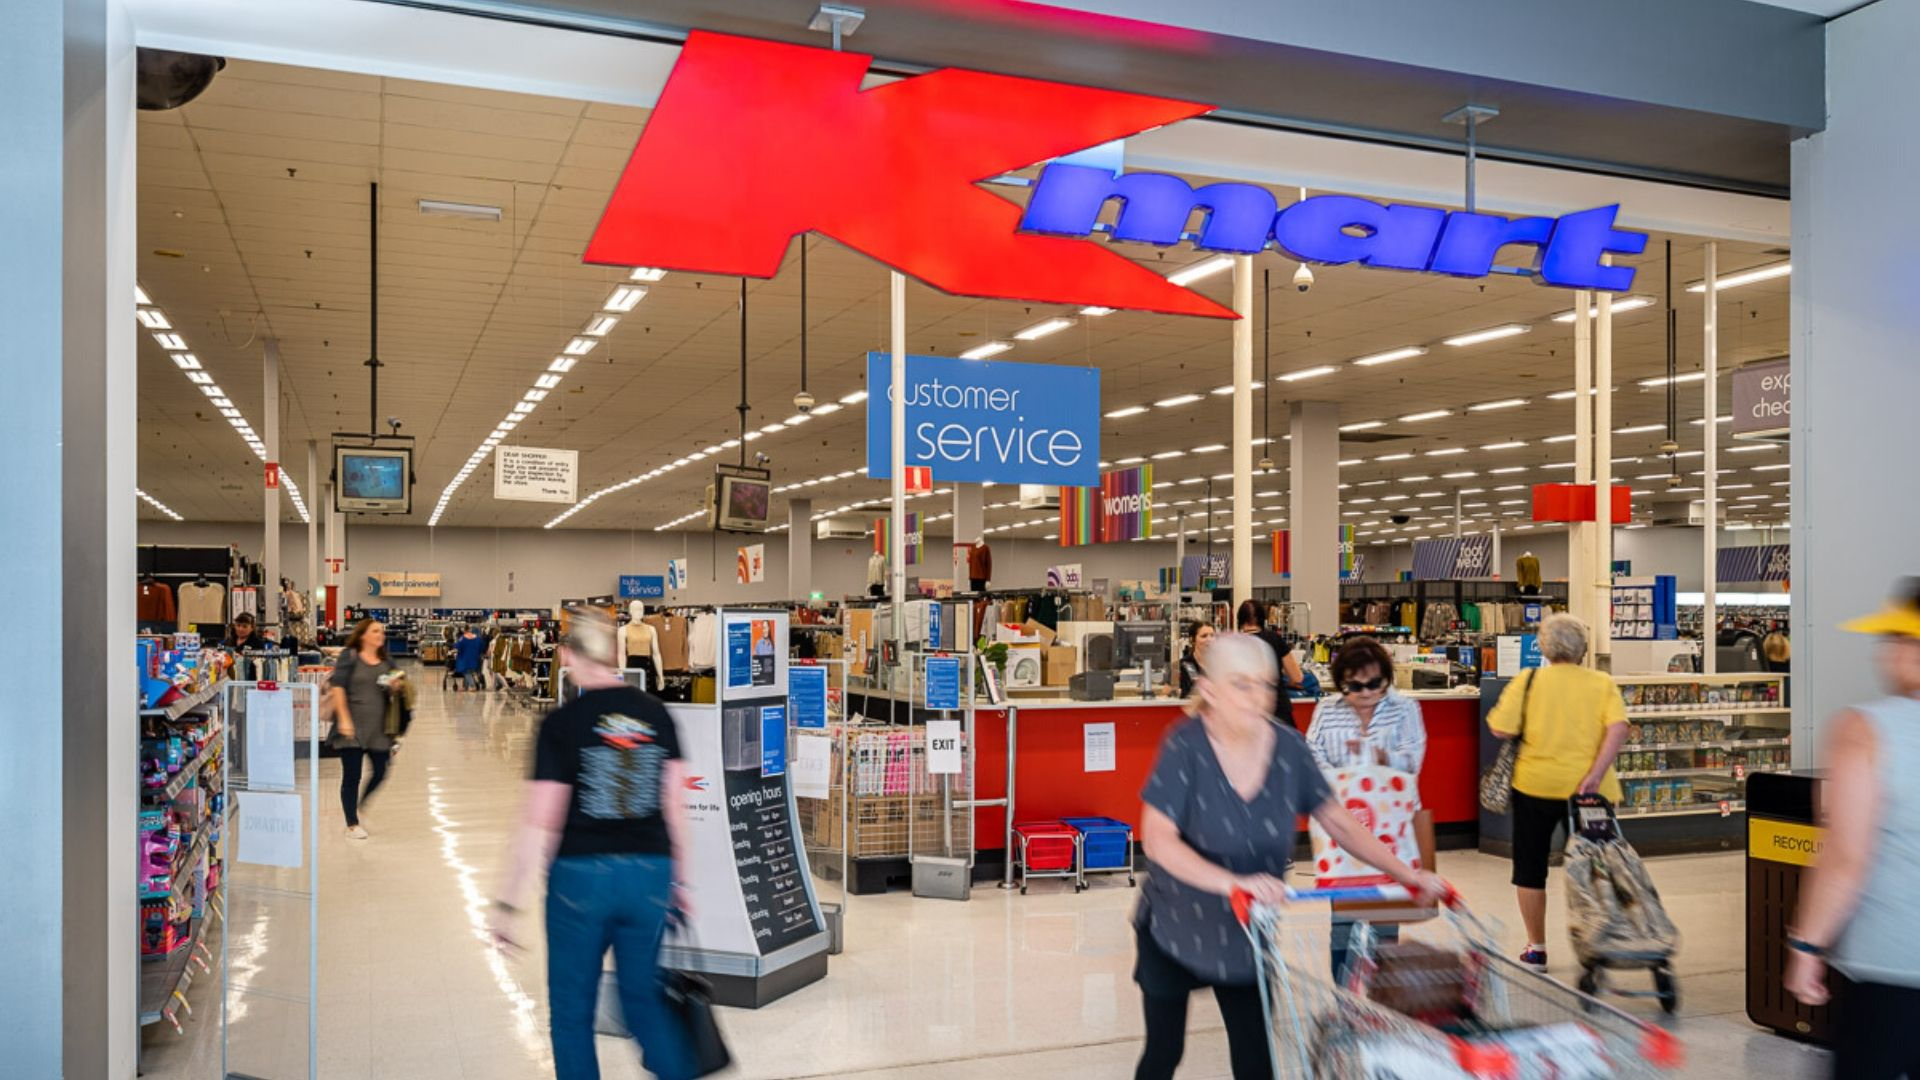 Port Adelaide Plaza - Kmart